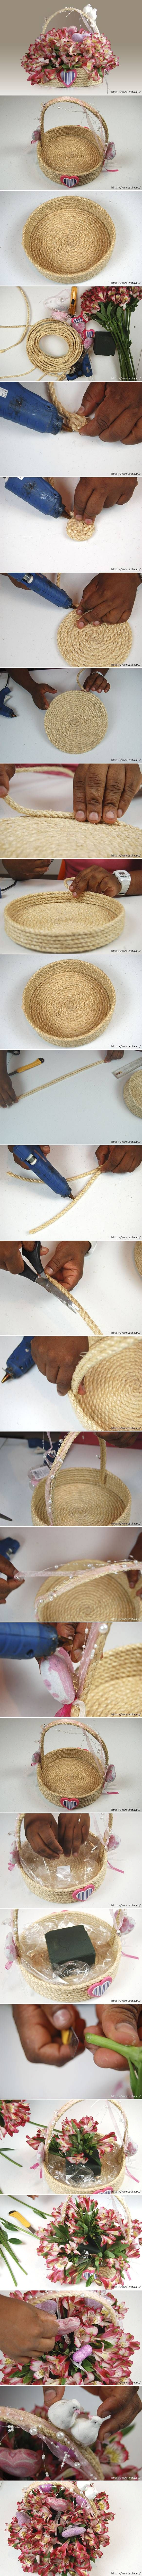 Make a rope basket and fill it with flowers (real or artificial) - a great idea for handmade gift!